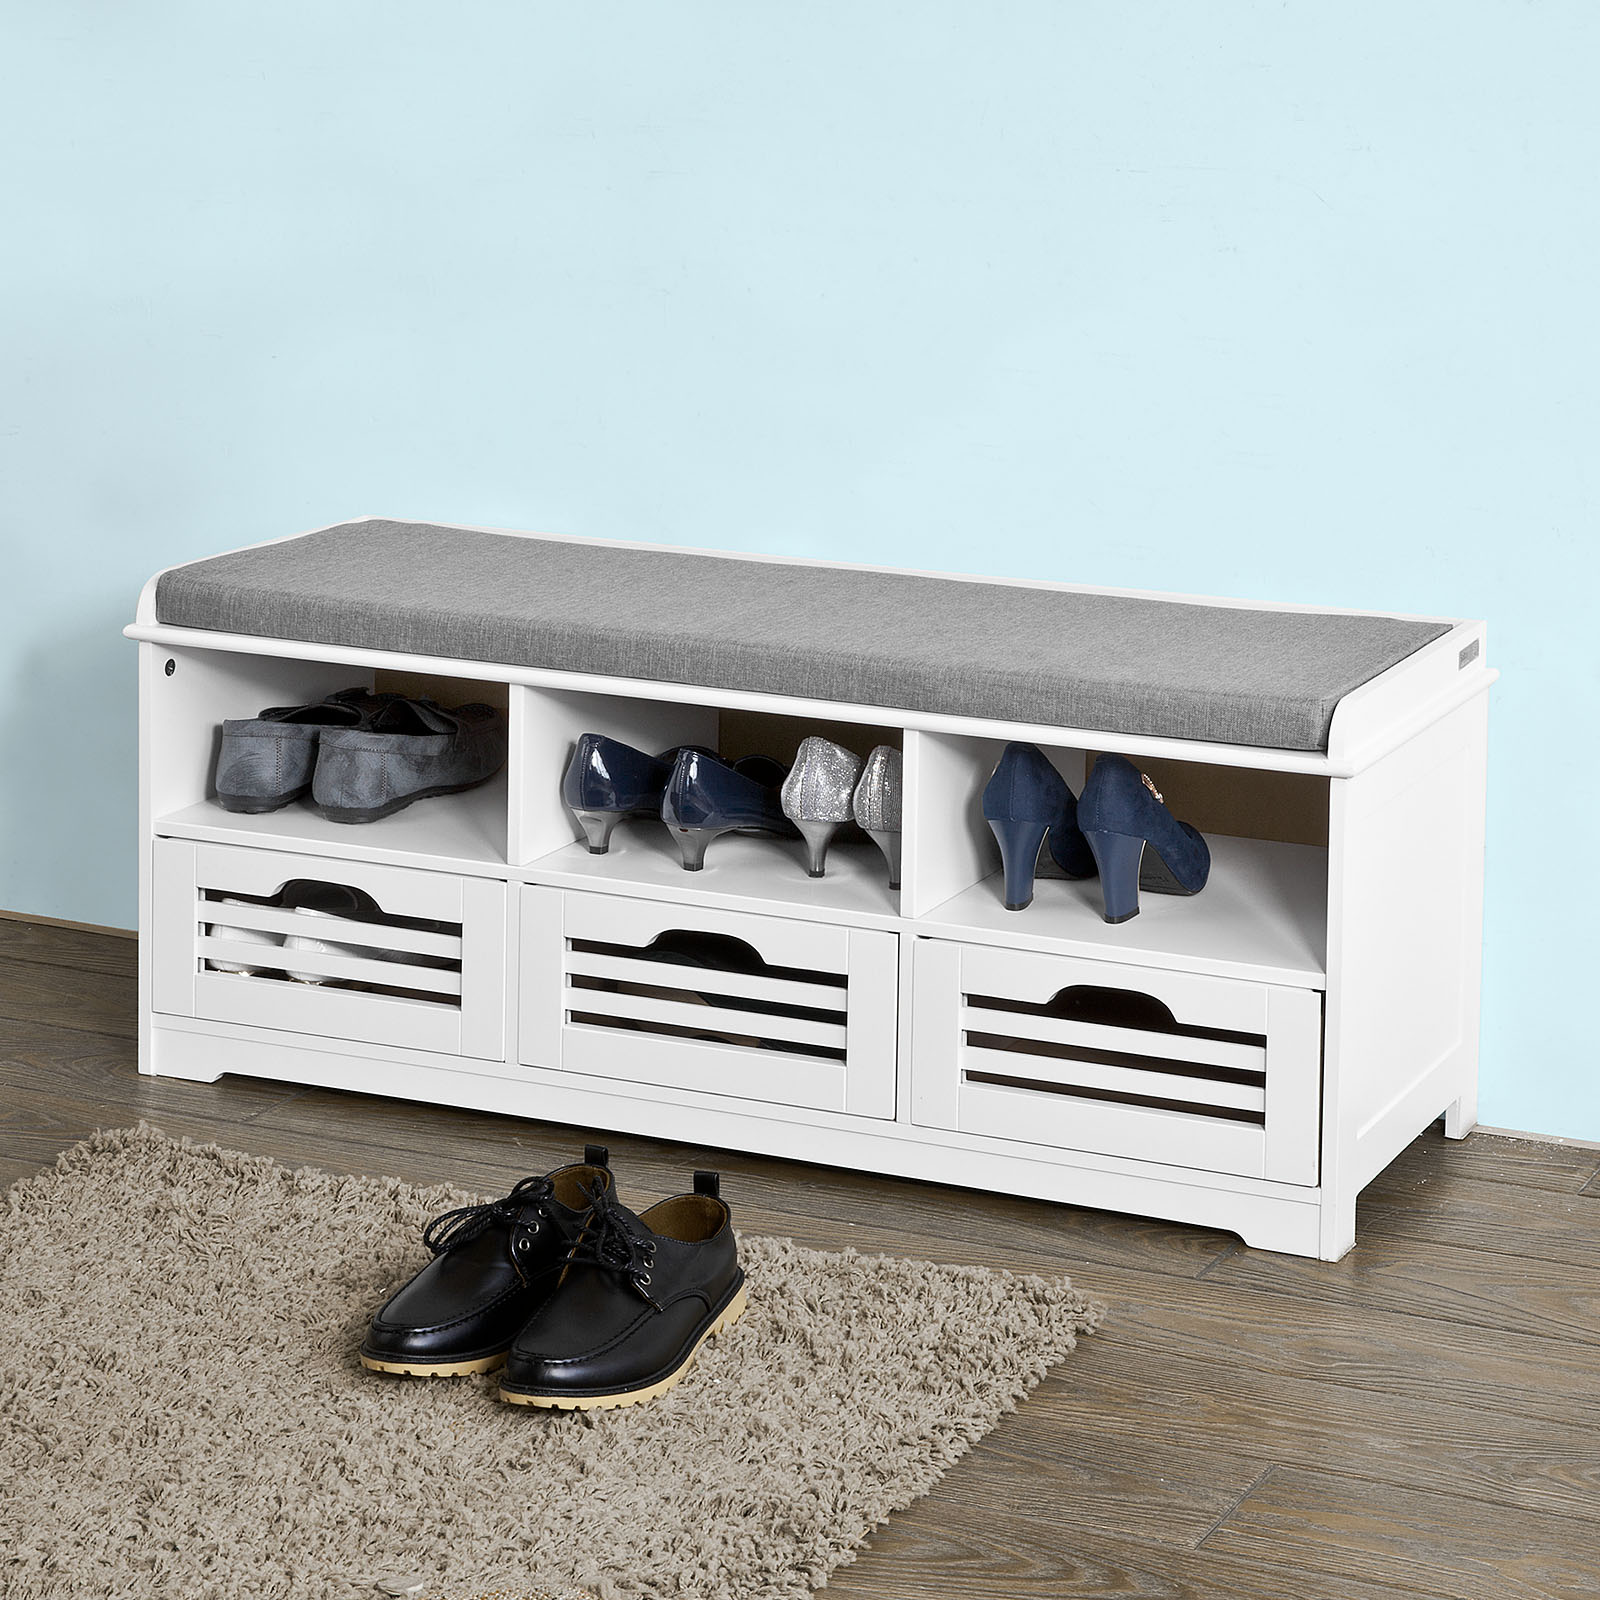 Haotian Storage Bench With 3 Drawers U0026 Seat Cushion, Shoe Cabinet Storage  Unit Bench,